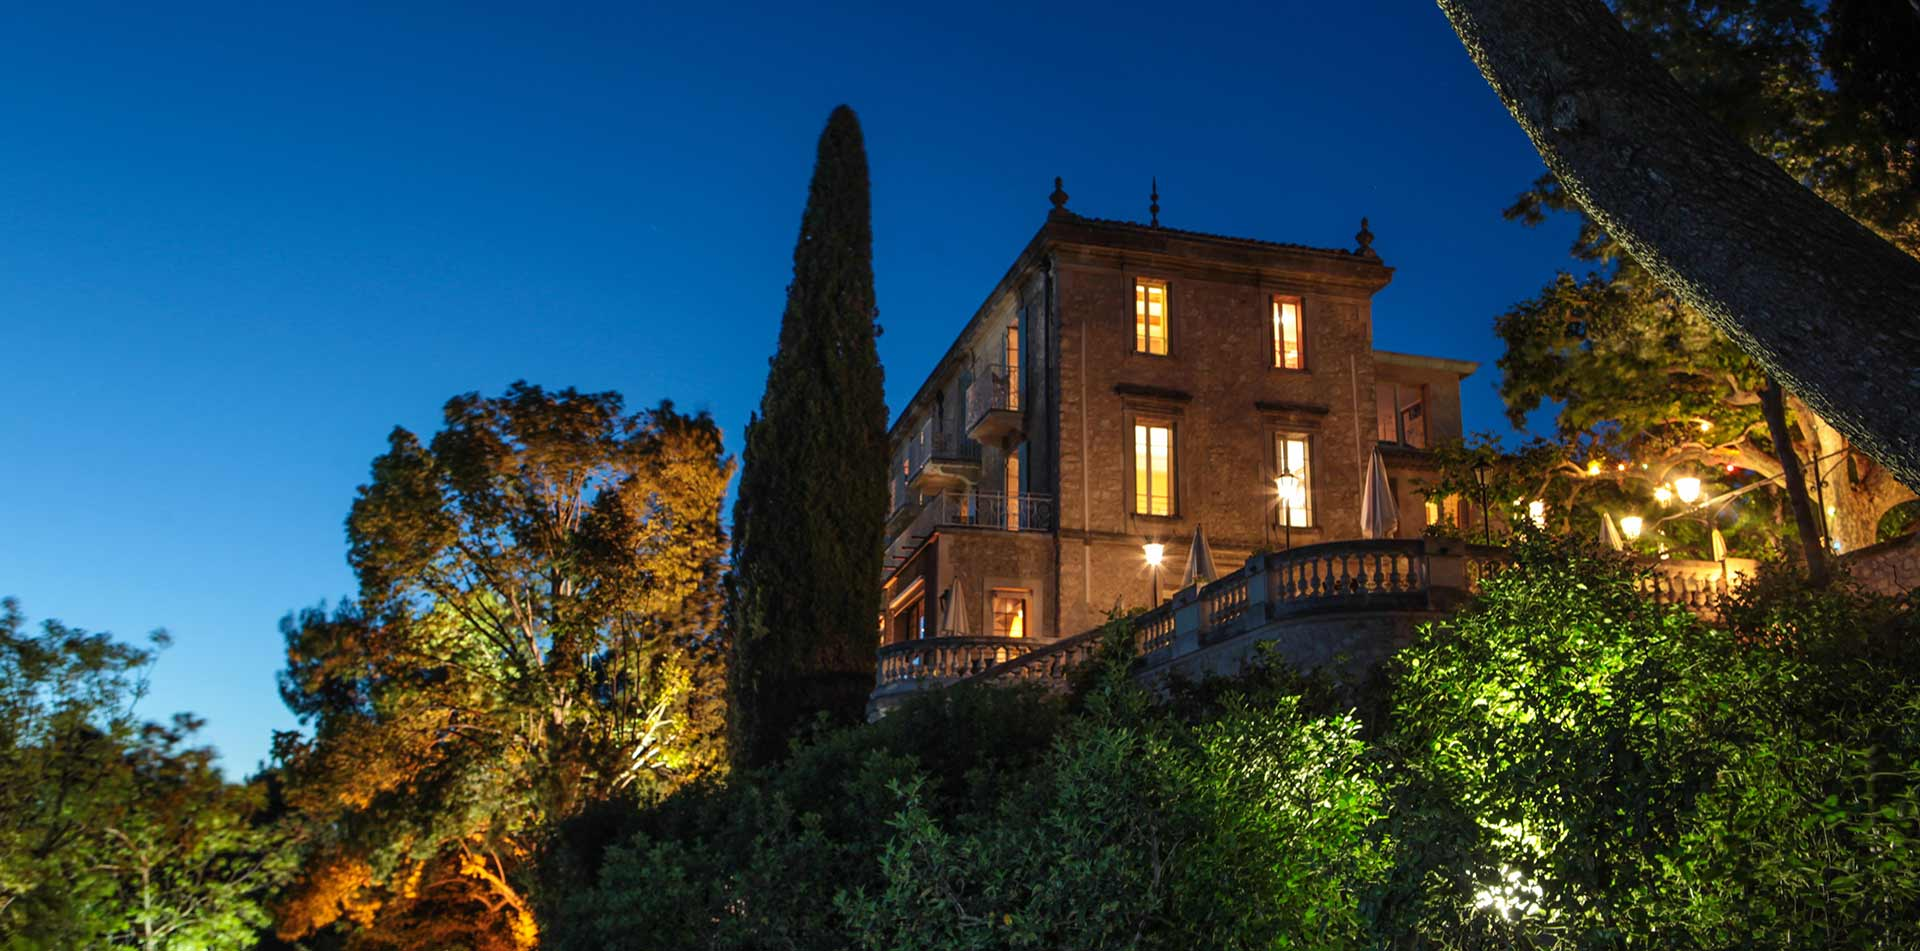 Europe France Avignon Auberge de Noves hotel exterior view at night from gardens - luxury vacation destinations